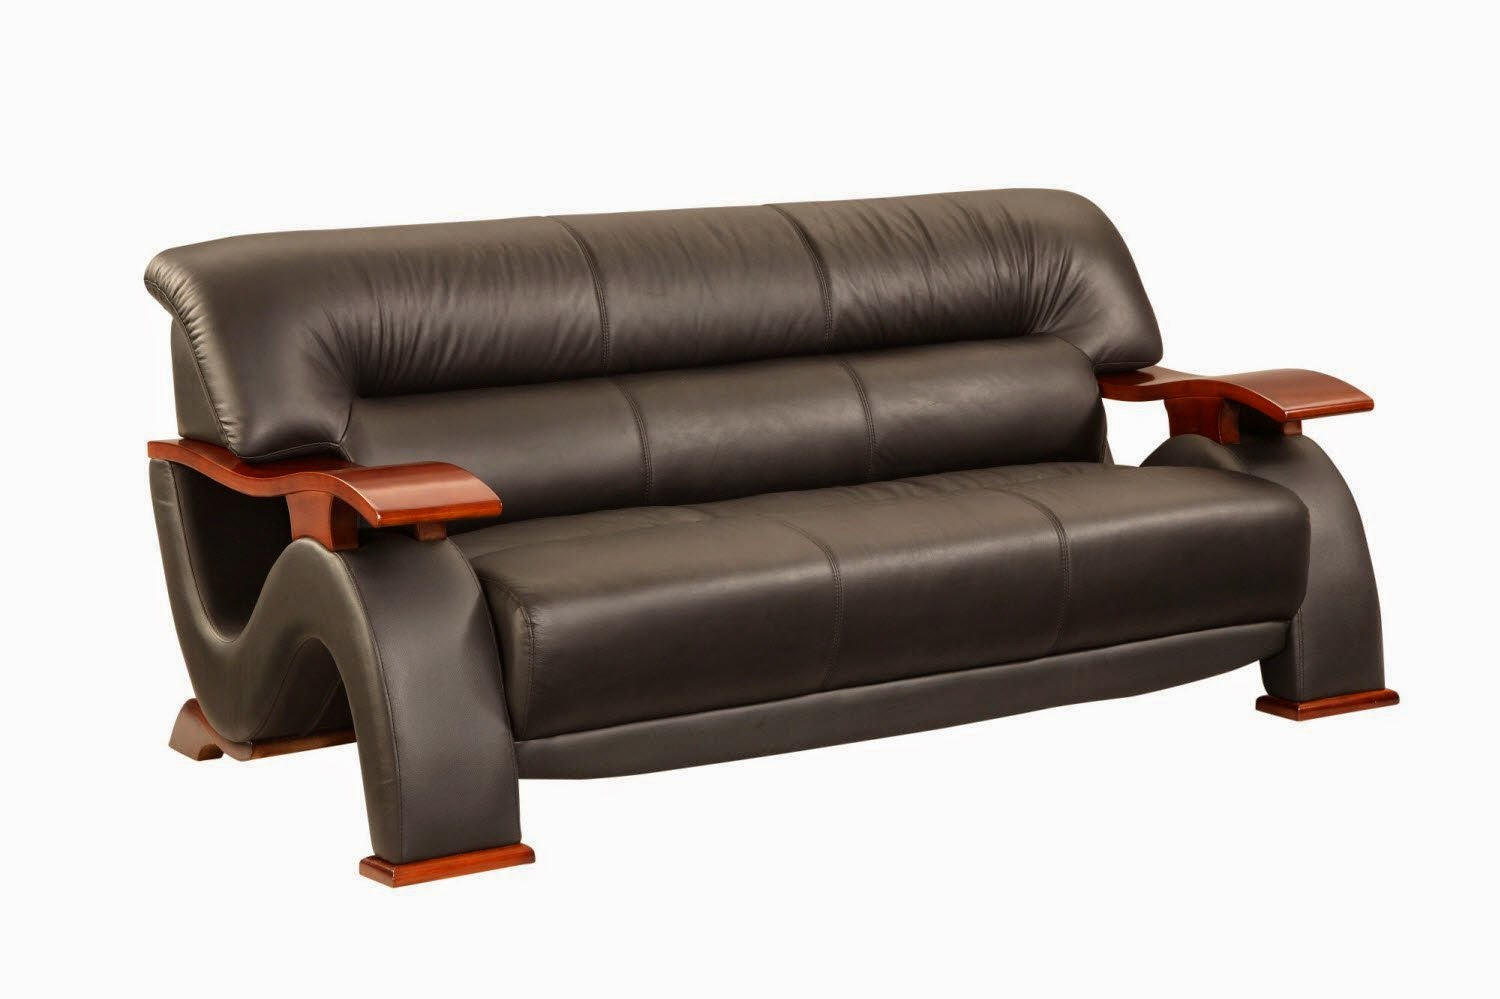 Small sofa small leather sofa Small leather loveseat